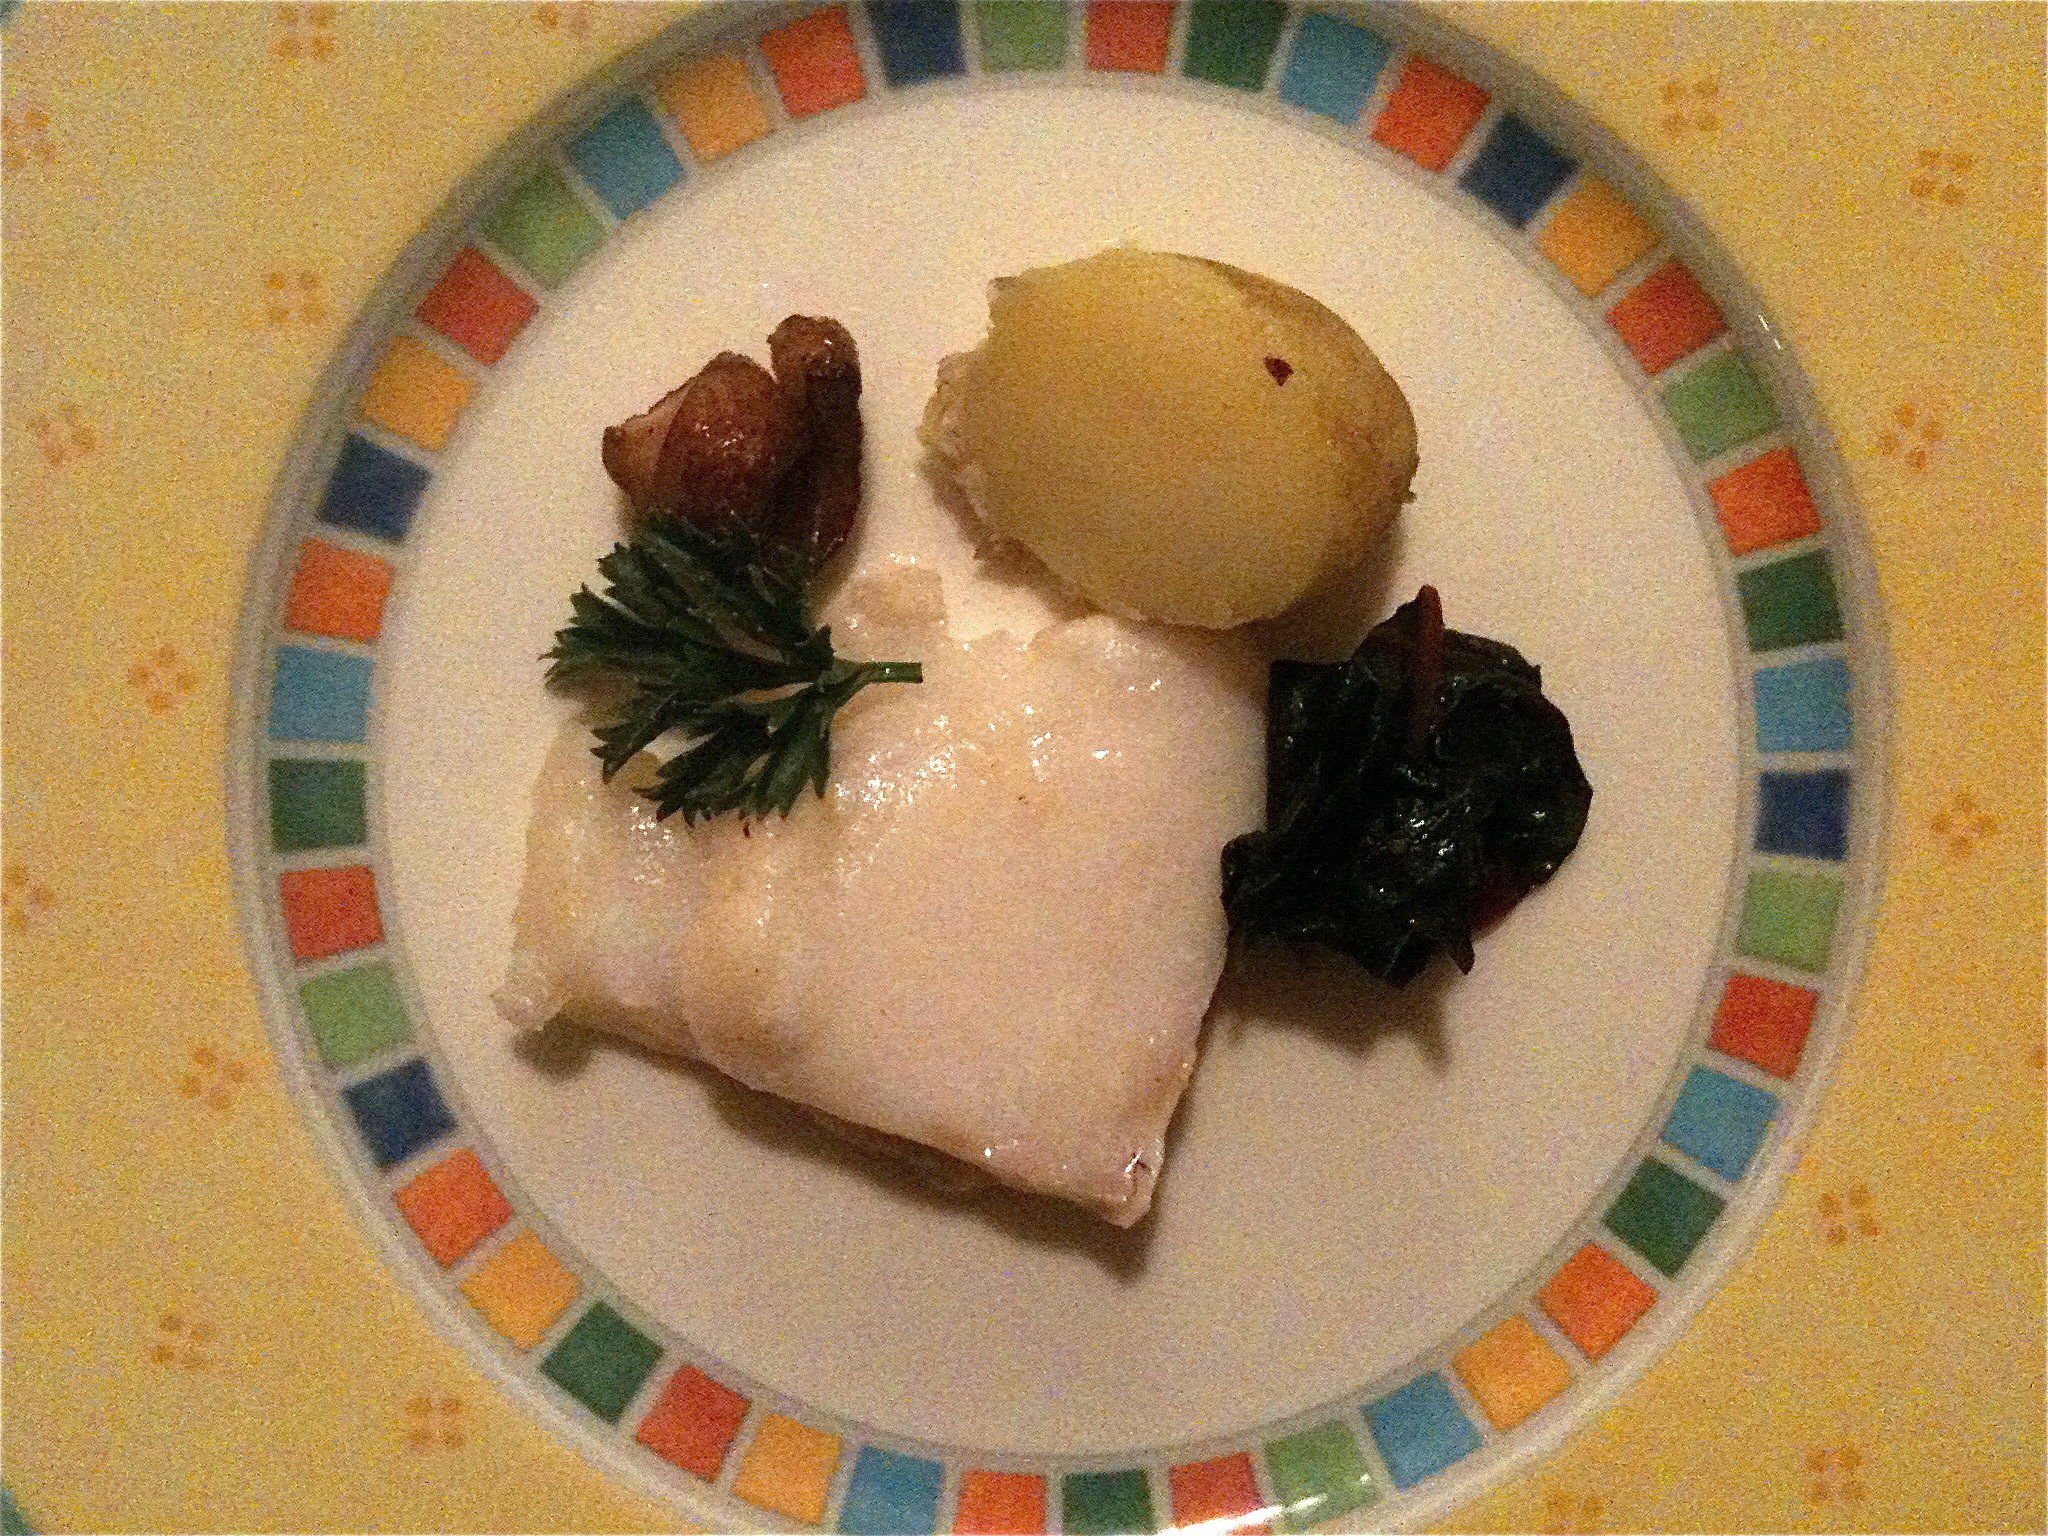 Fall also saw us eating Market fresh cod (incredible flesh), with simply steamed baby potatoes and quickly sauteed chard, using duck fat from those smoked duck breasts from the market...